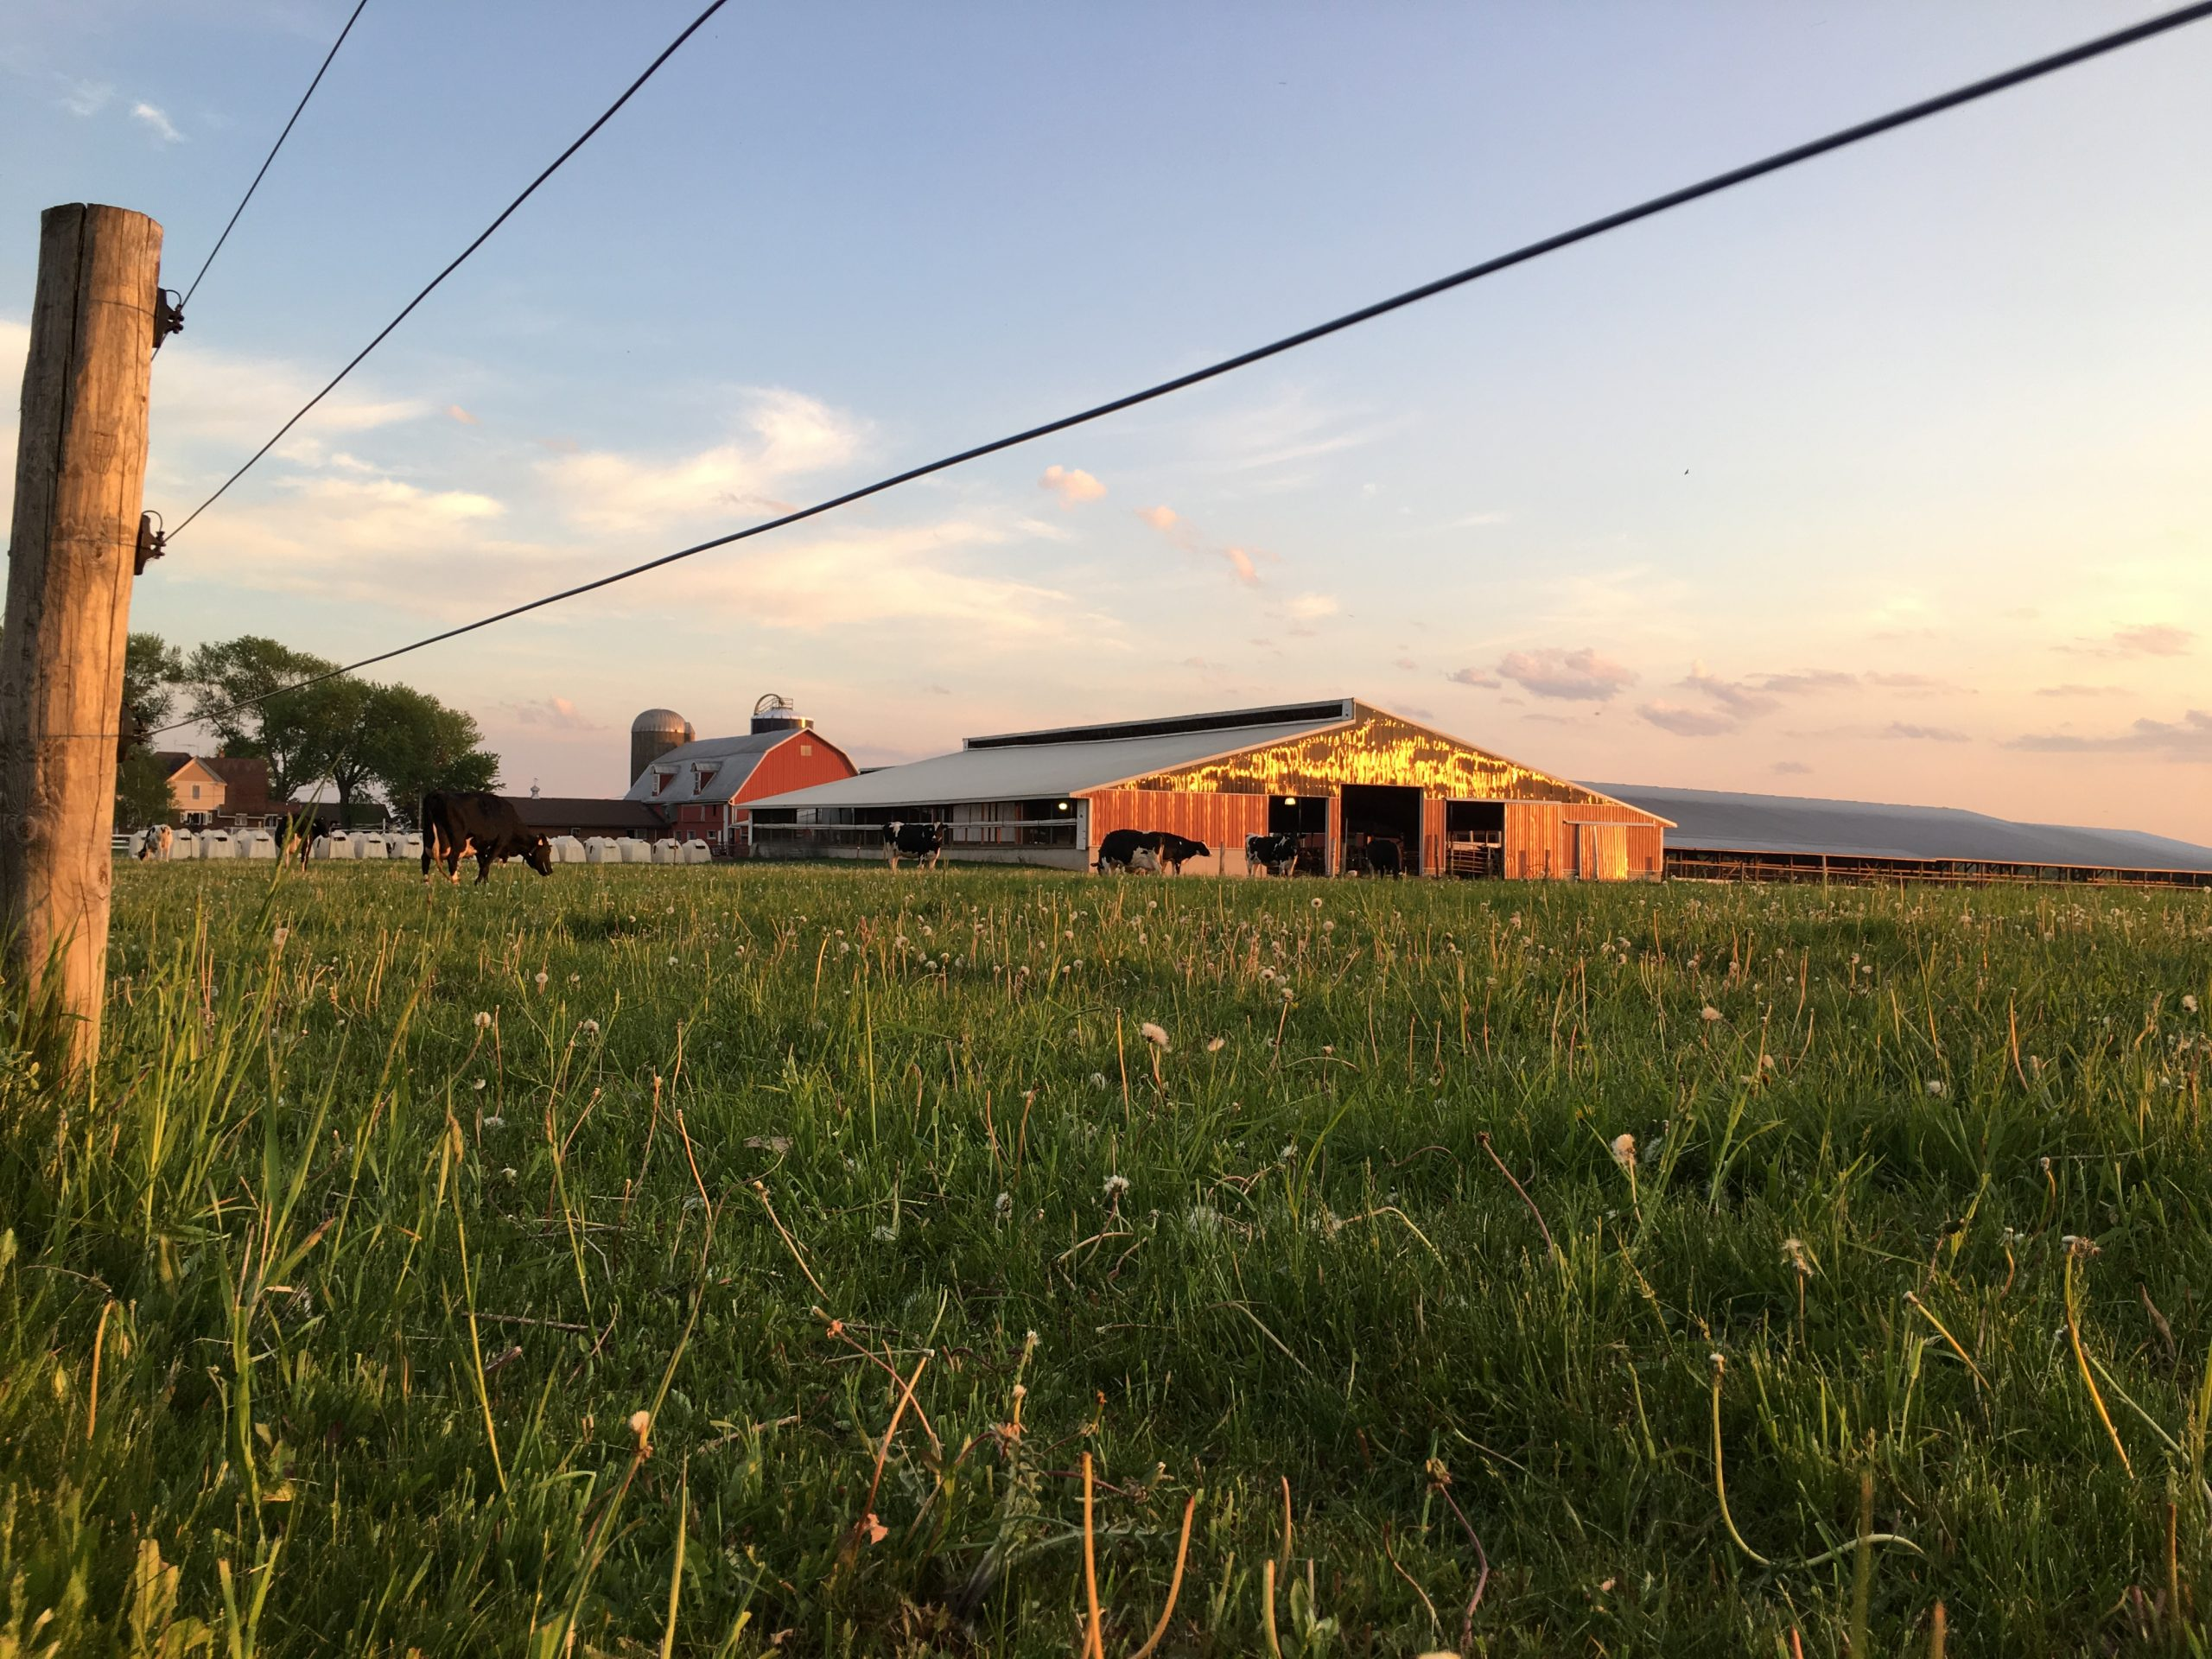 An image of the Brey Cycle Farm with the barn, field, and cows in the background.